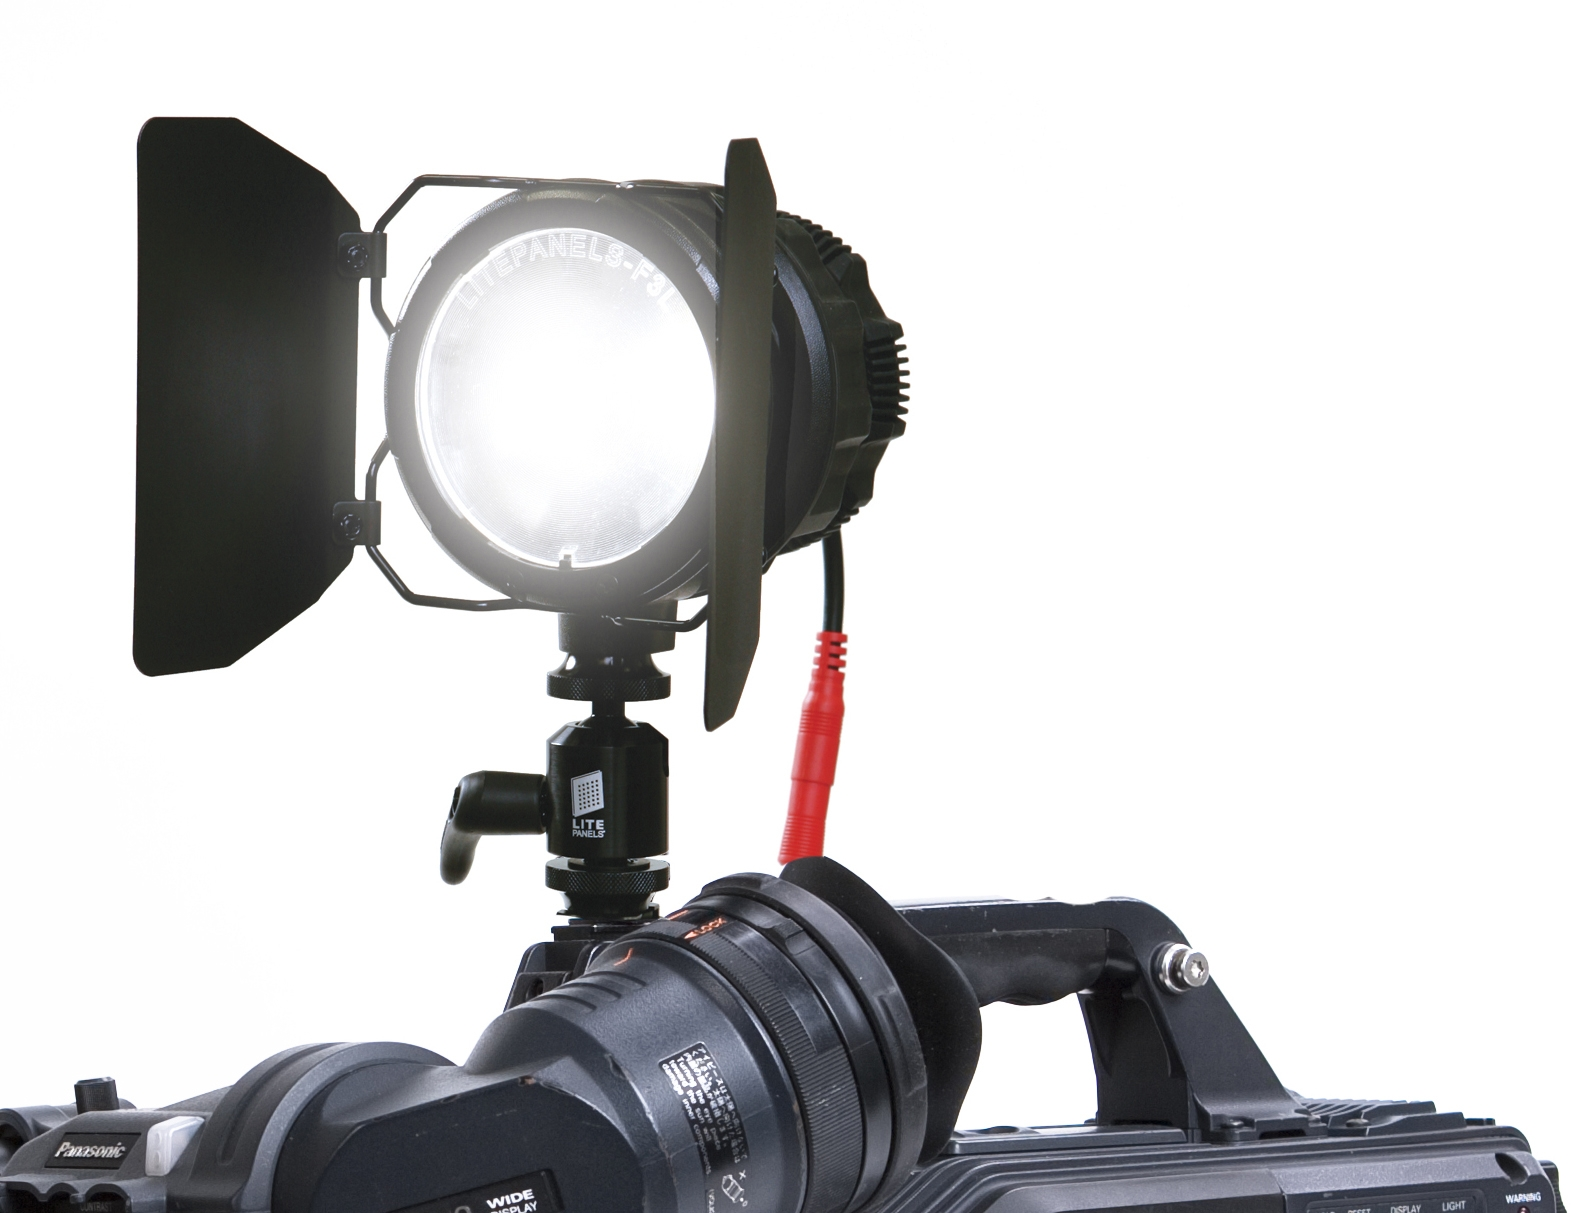 Find out more about hiring the Litepanels Sola ENG Fresnel